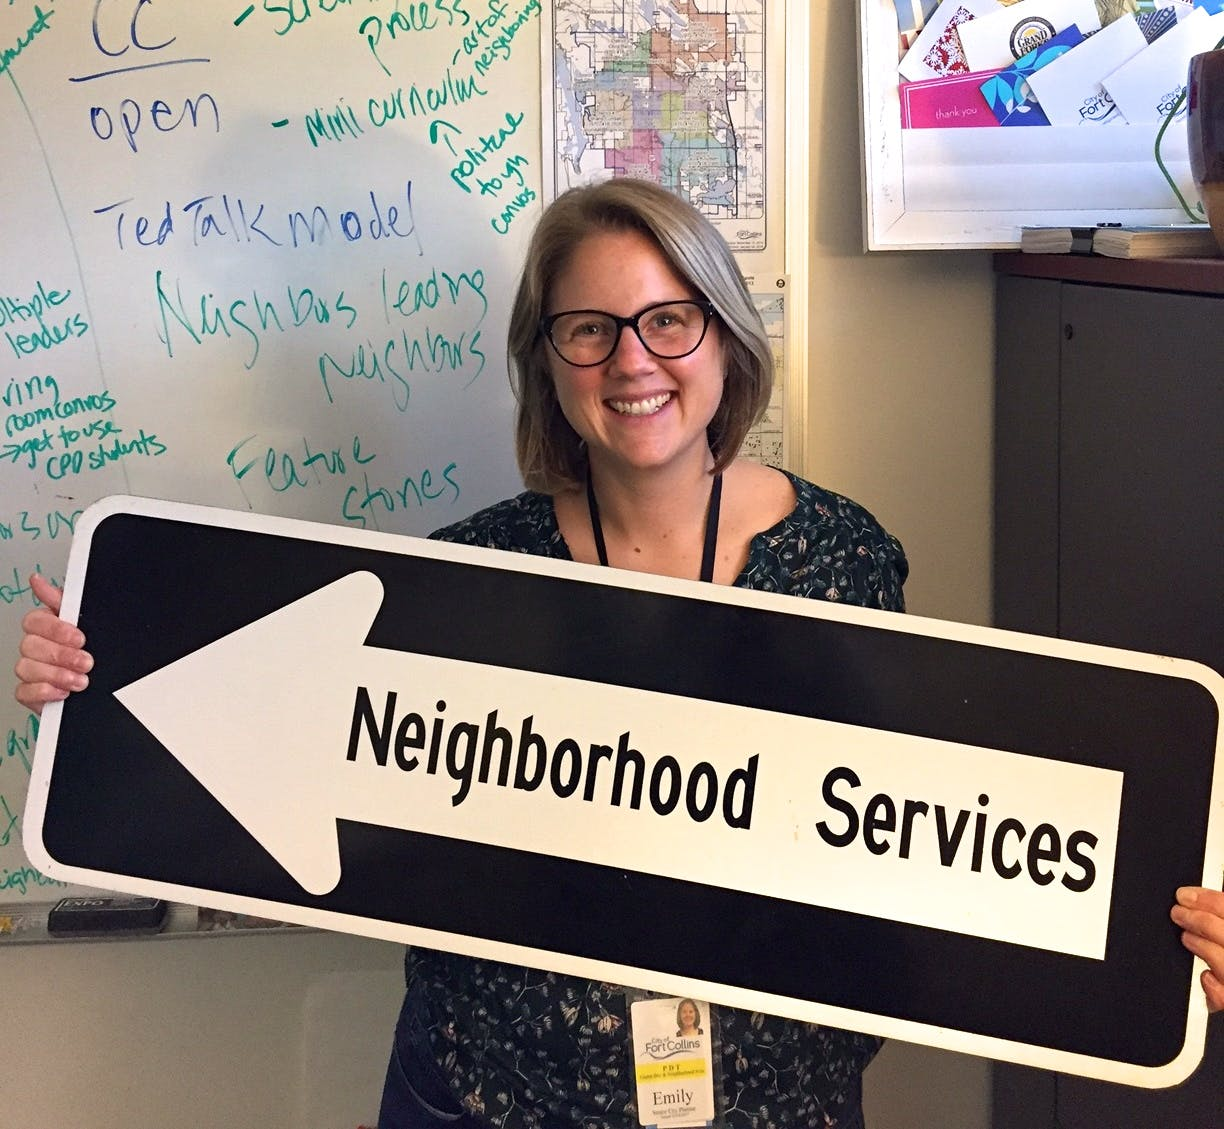 Neighborhood services picture 2   may 2017